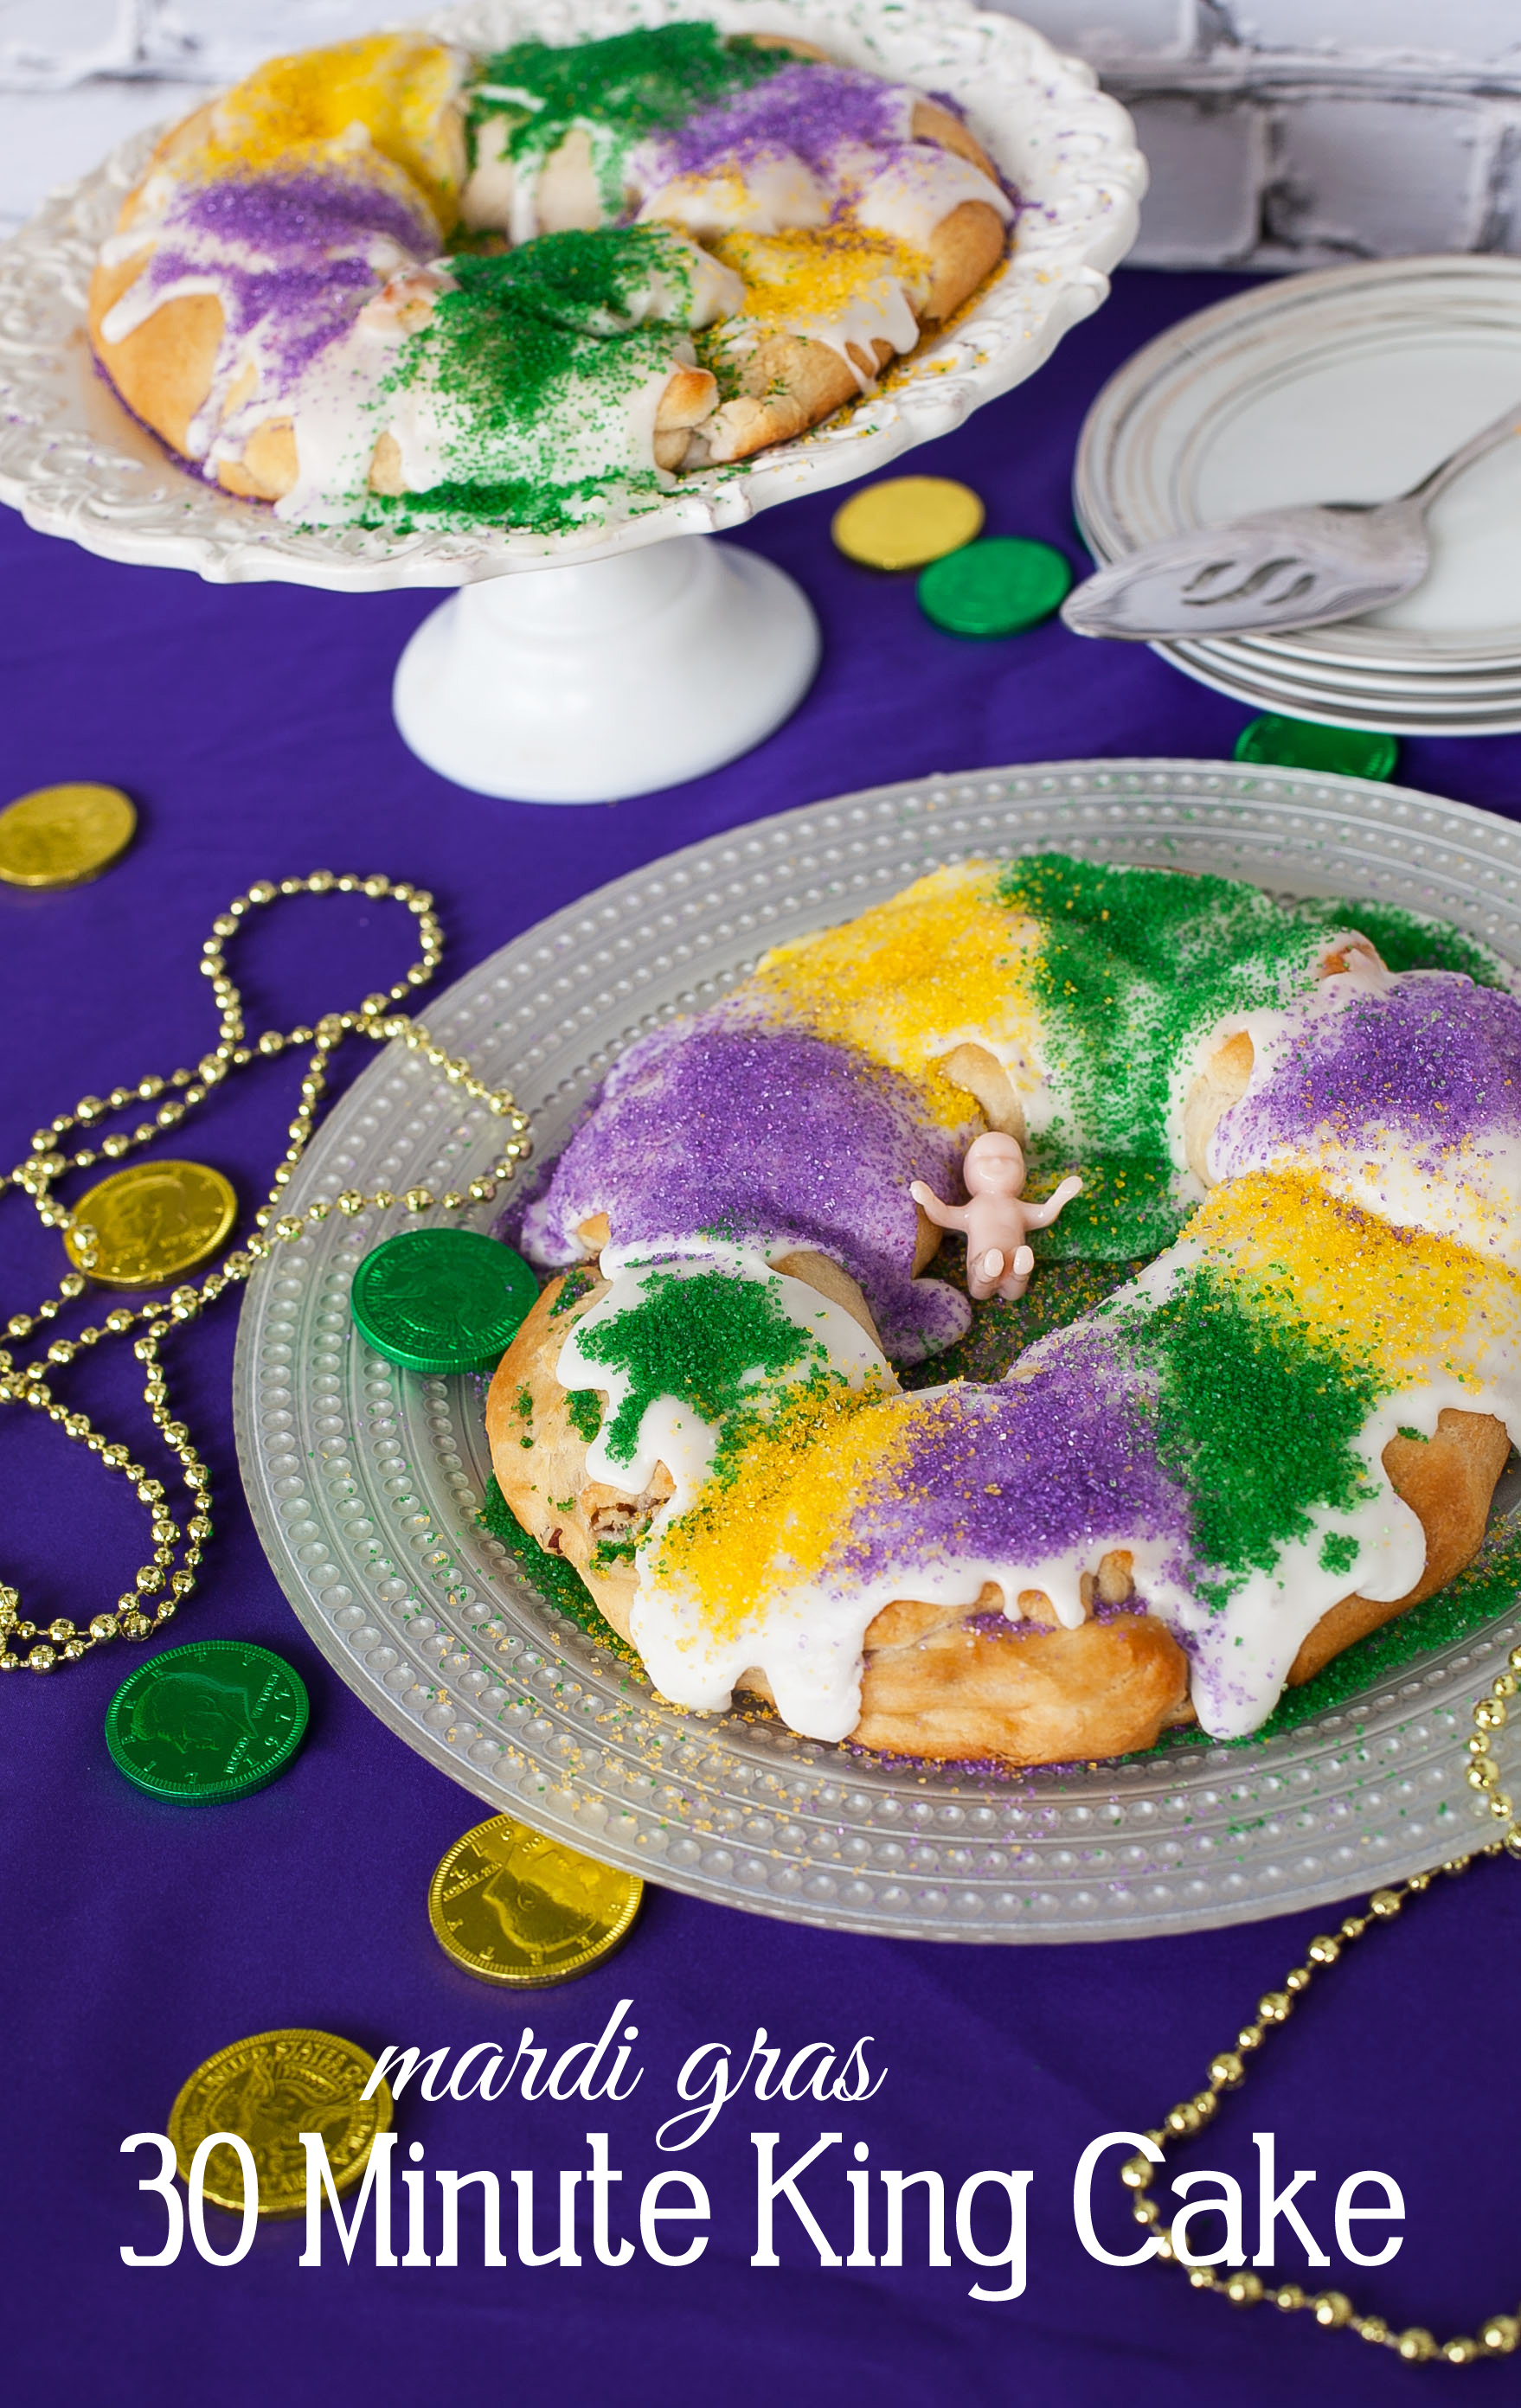 king cake recipe easy 30 minute king cake recipe for mardi gras frog 5318